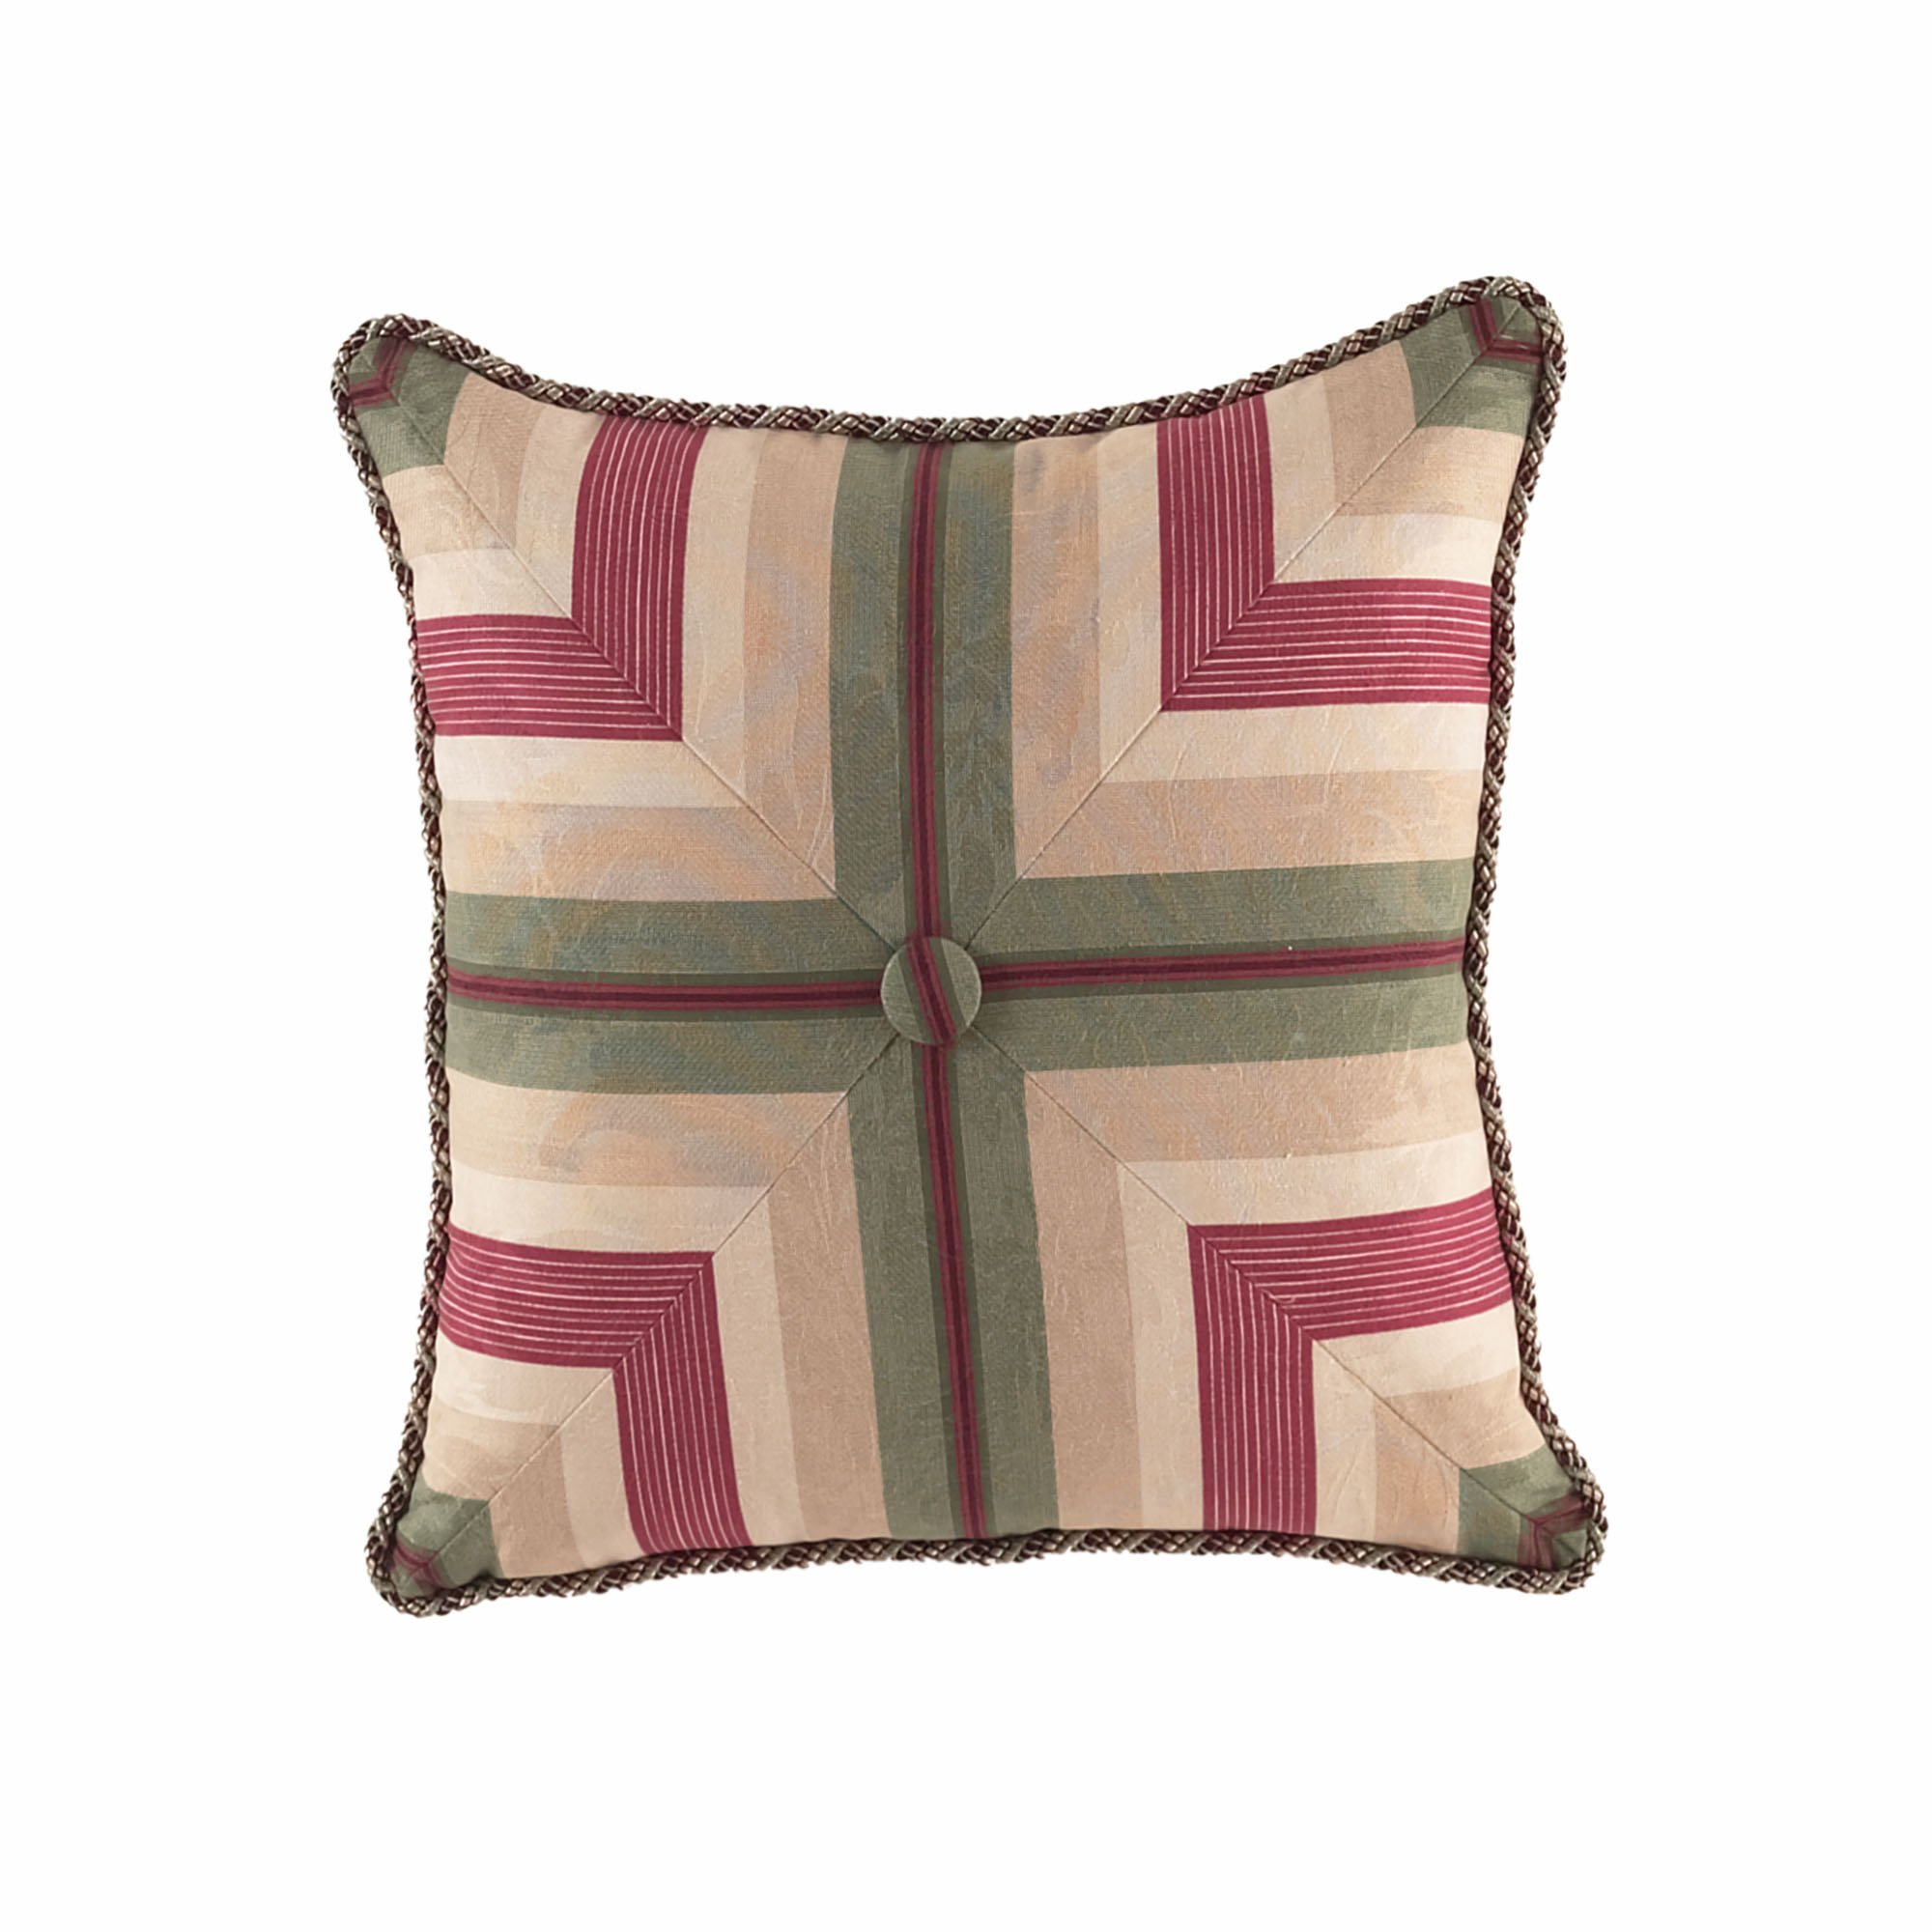 WAVERLY 13157020X020MUL Laurel Springs 20-Inch by 20-Inch Button Tufted Accent Pillow, Multi